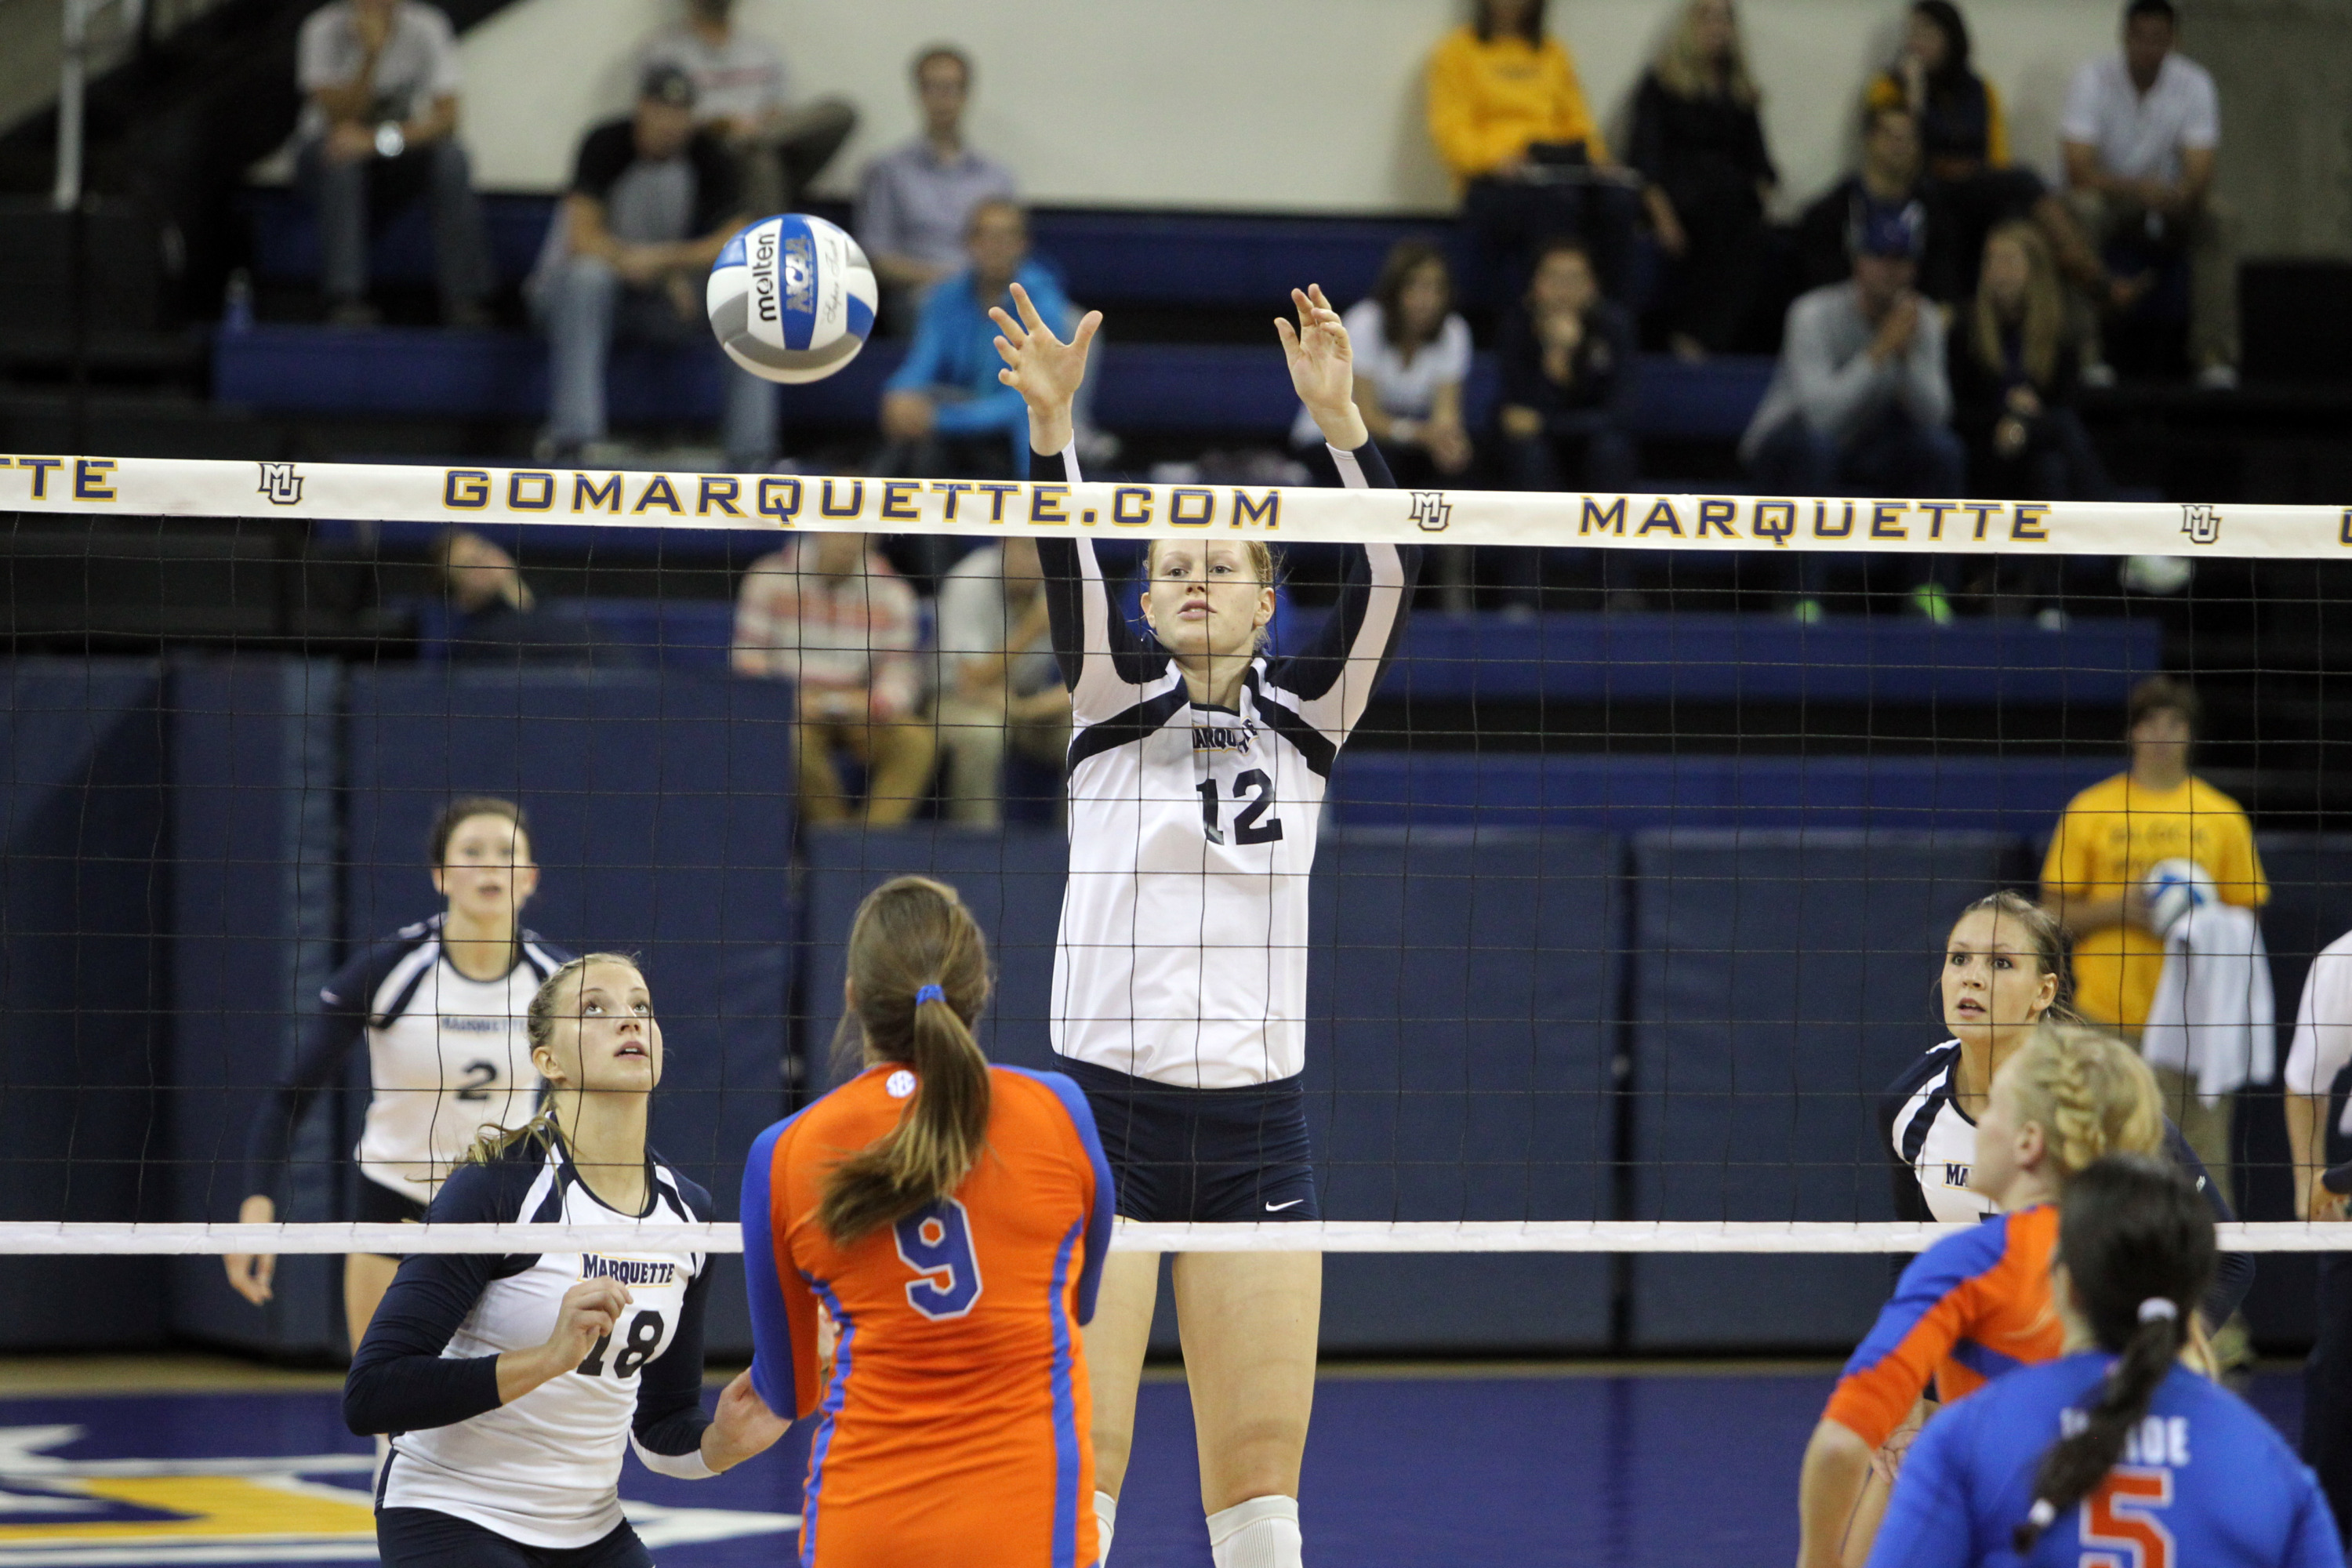 Jackie Kocken hit .583 with eight kills and two blocks in the win.